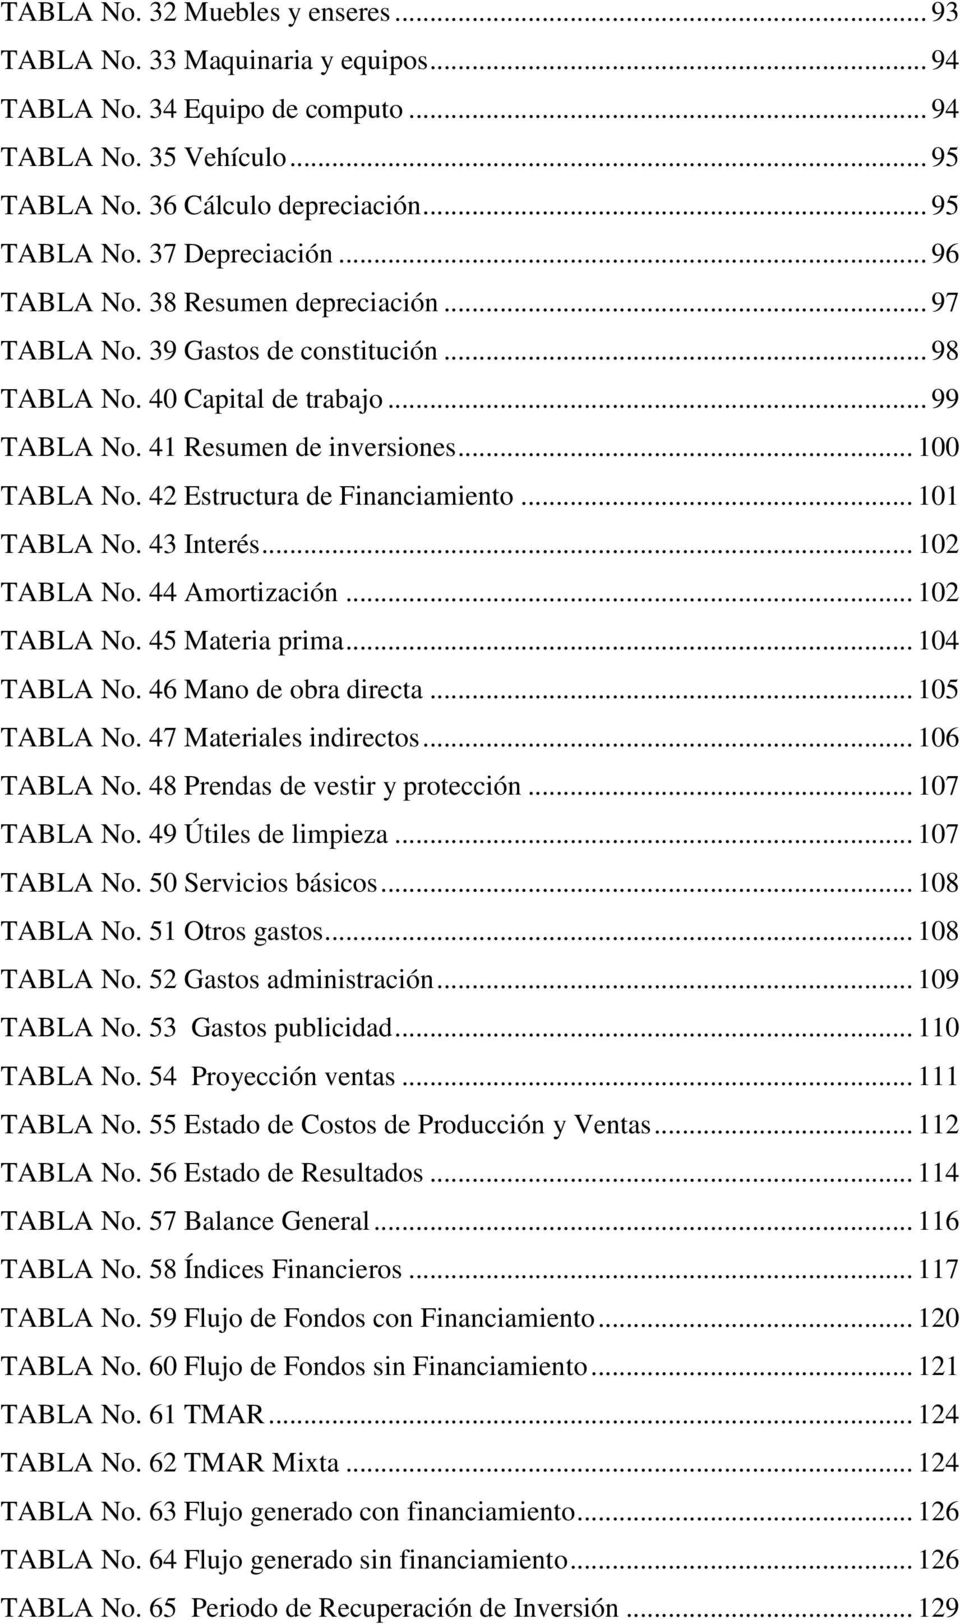 42 Estructura de Financiamiento... 101 TABLA No. 43 Interés... 102 TABLA No. 44 Amortización... 102 TABLA No. 45 Materia prima... 104 TABLA No. 46 Mano de obra directa... 105 TABLA No.